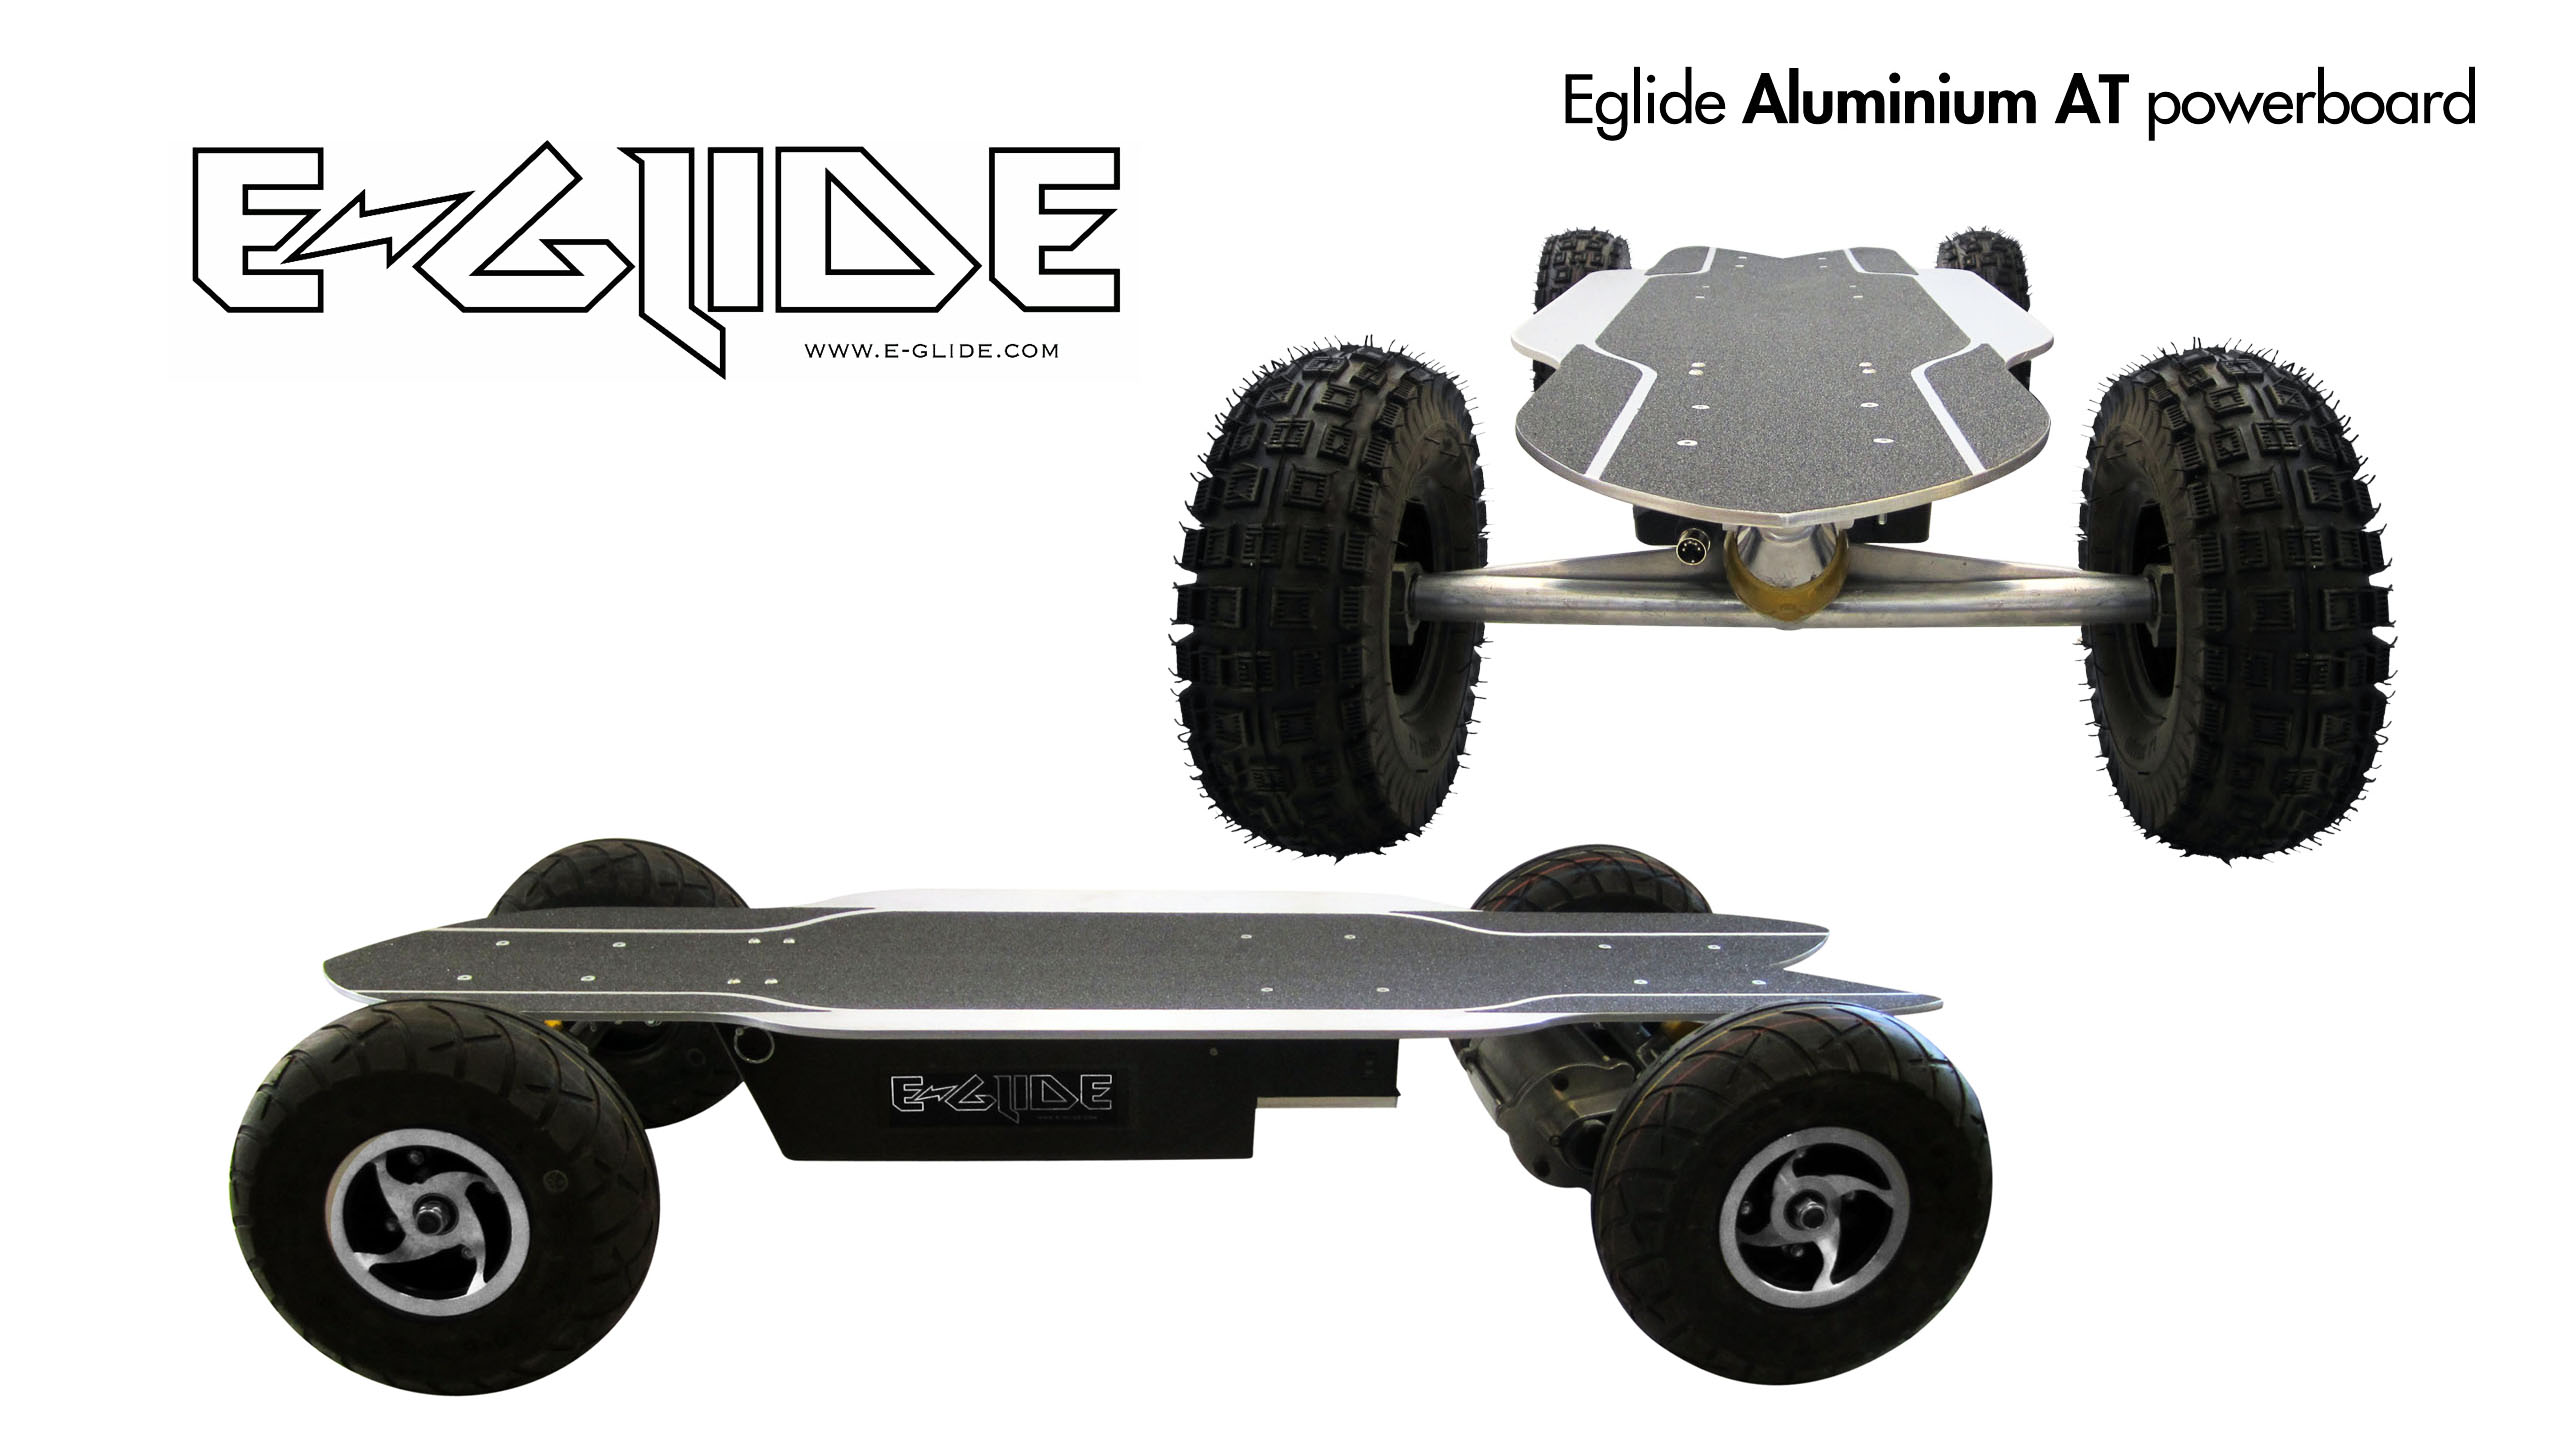 E-Glide Electric Skateboard